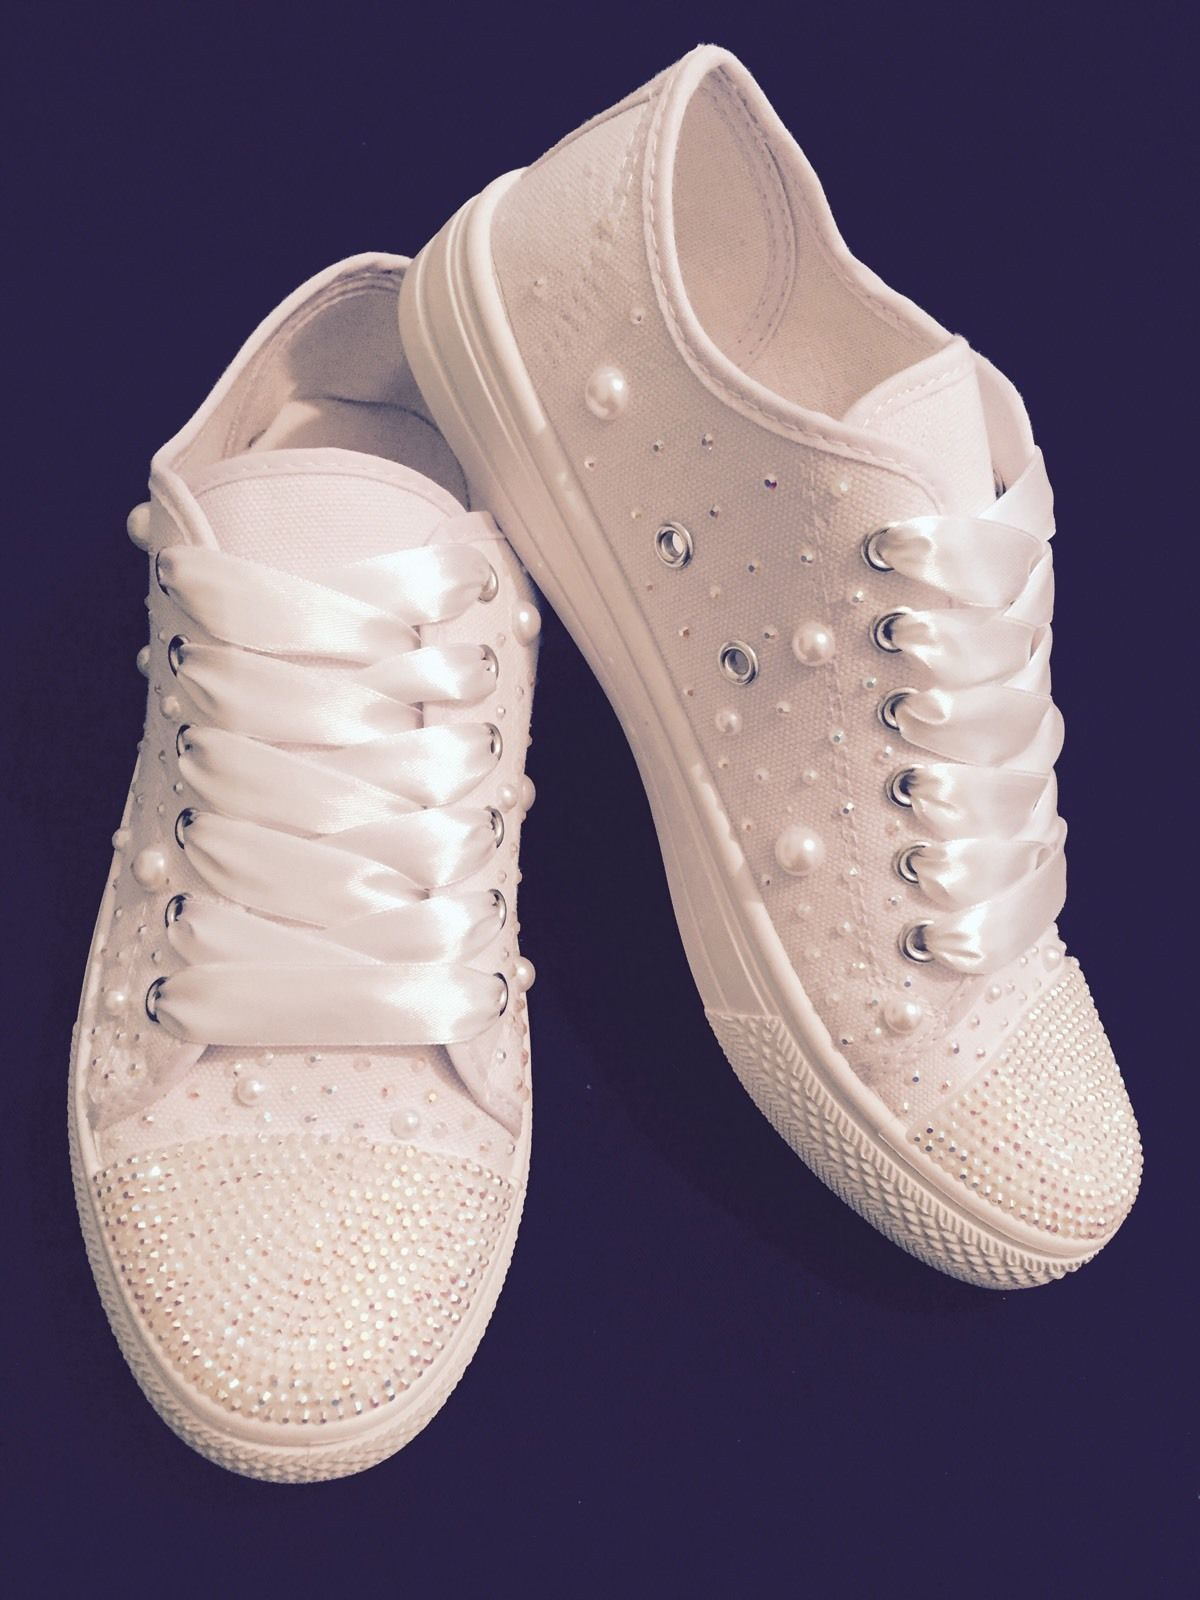 55e349edb71c Wedding Bridal Trainers Pumps Shoes Customised Personalised Bling 3 4 5 6 7  8 9